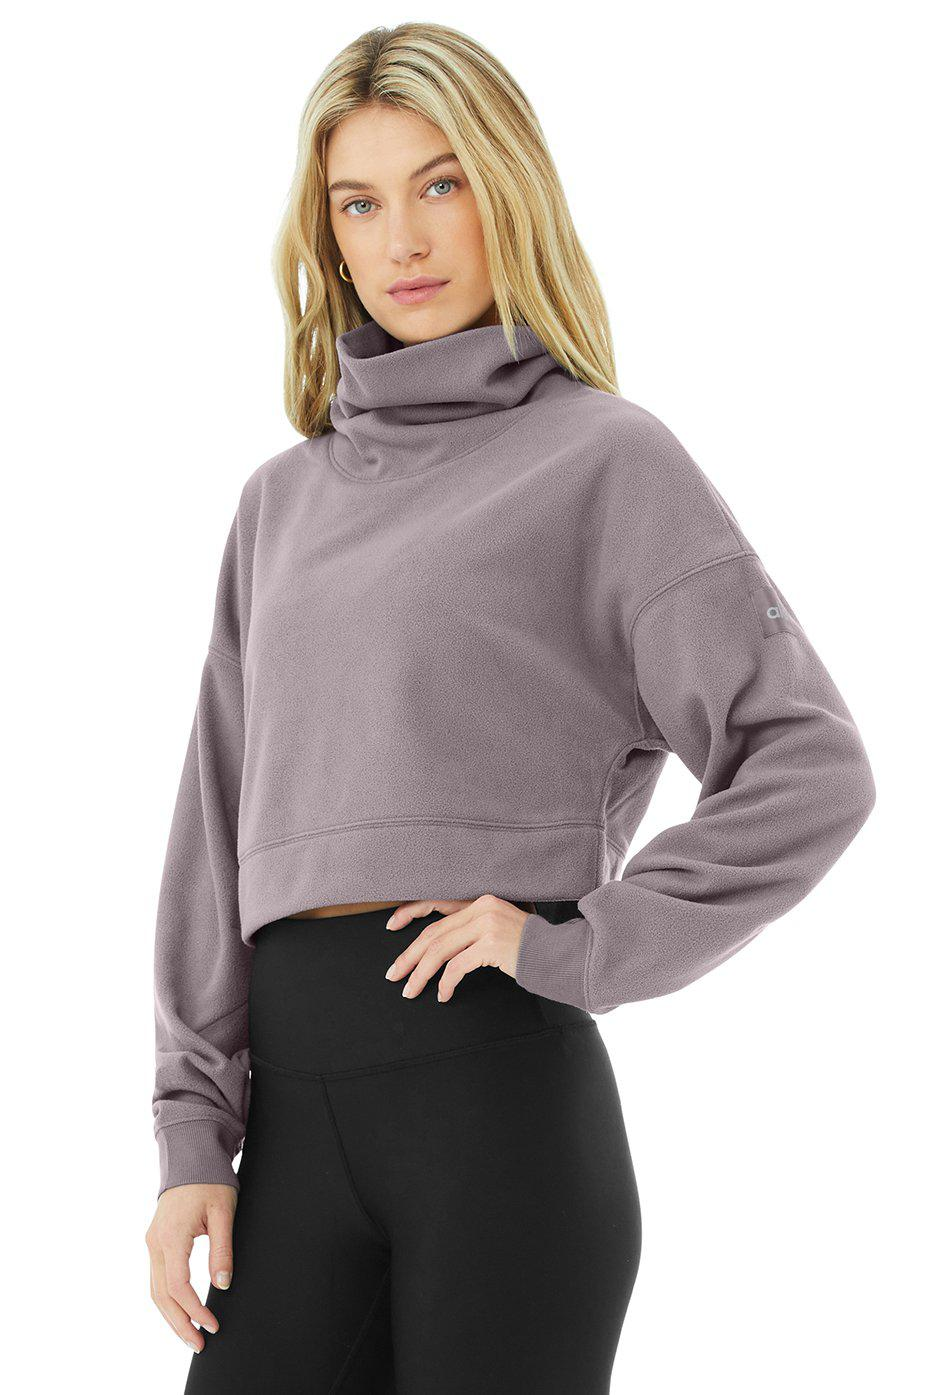 Cropped Warm Up Pullover - Purple Dusk 1